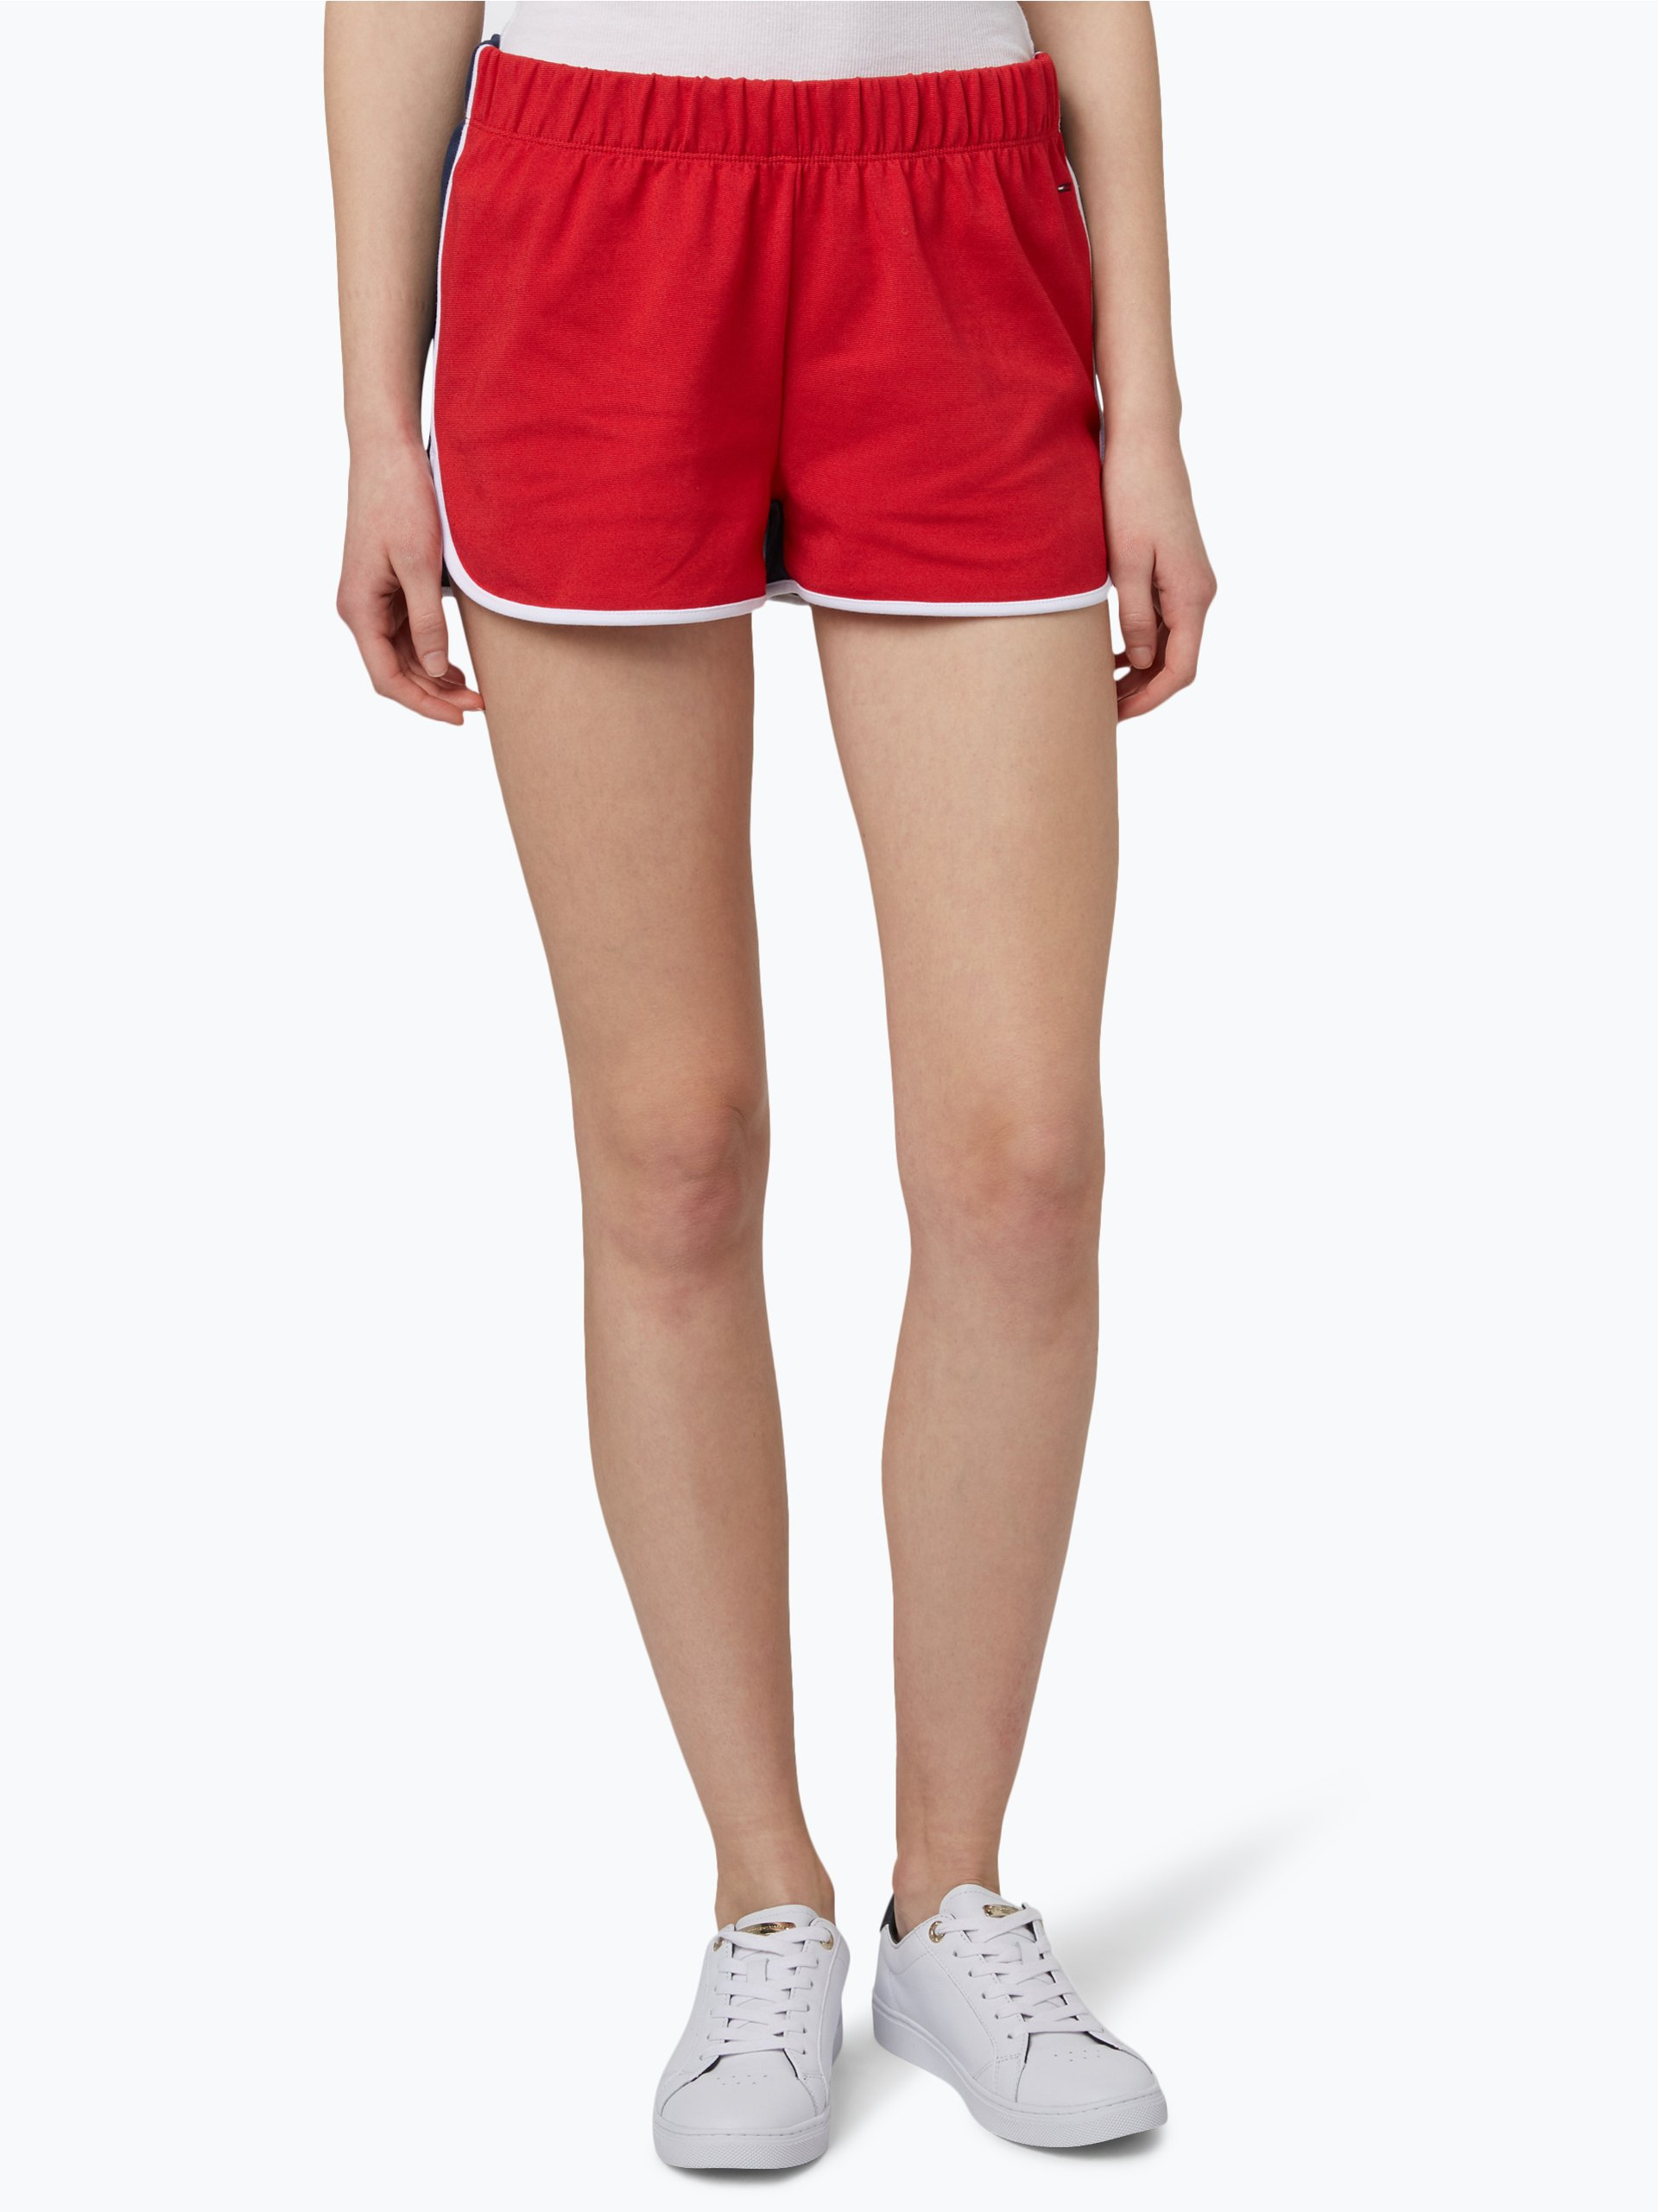 tommy jeans damen shorts rot uni online kaufen peek und cloppenburg de. Black Bedroom Furniture Sets. Home Design Ideas